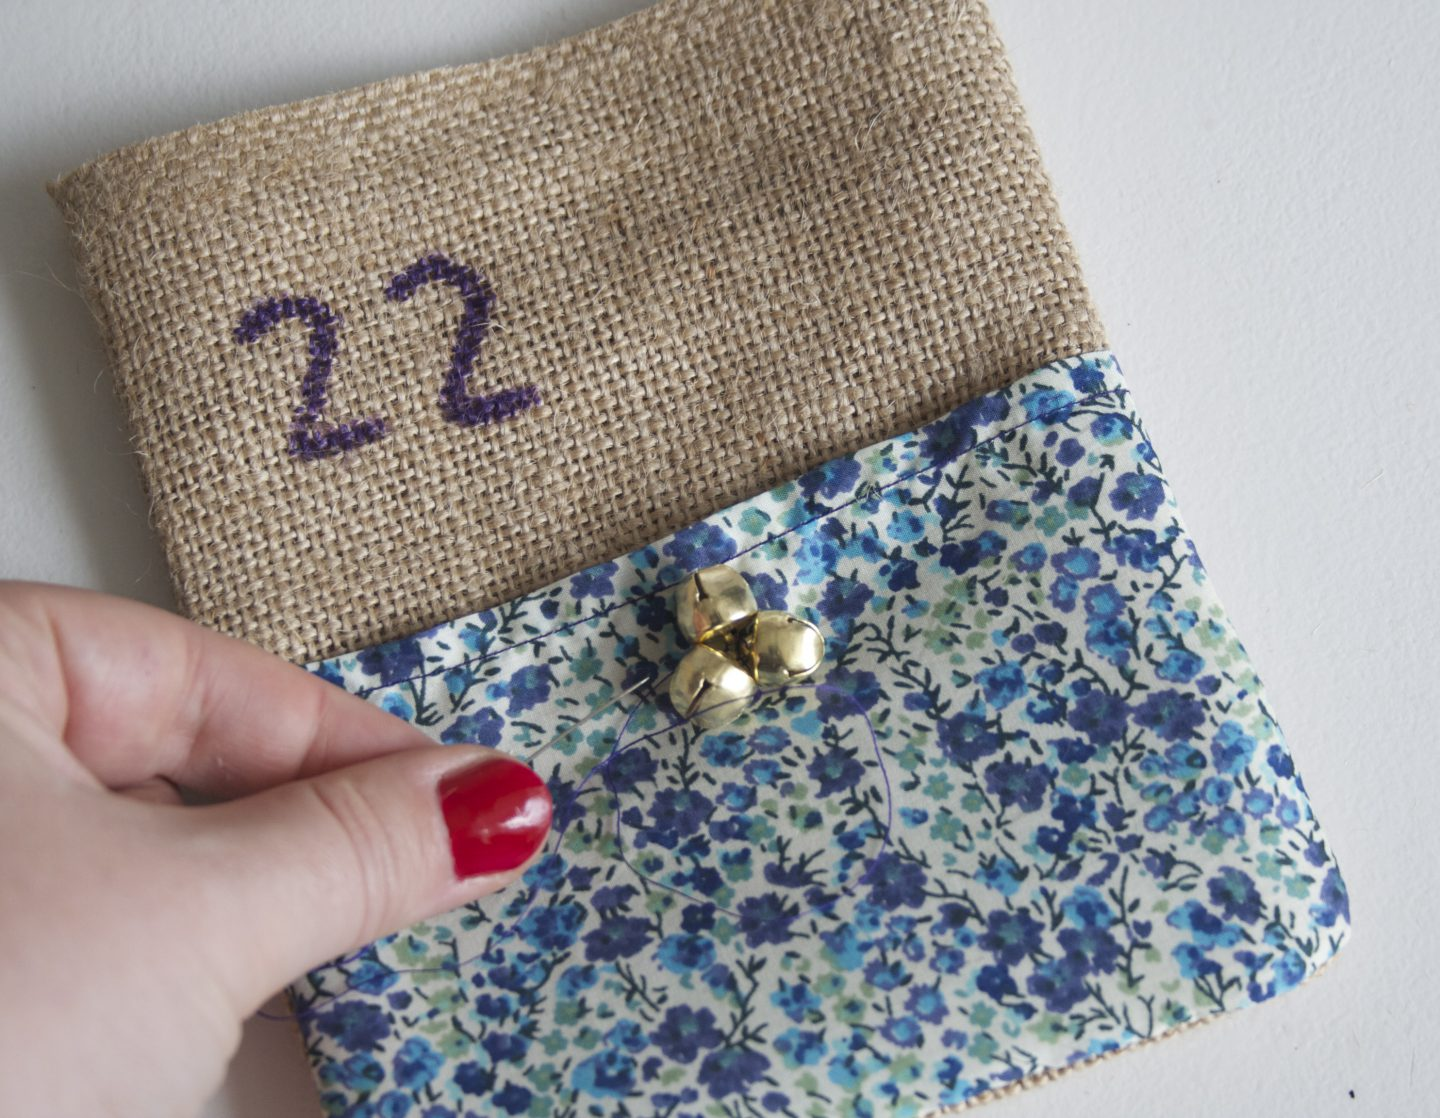 How to make Liberty print advent bunting | DIY advent calendar | Liberty print sewing project | Apartment Apothecary